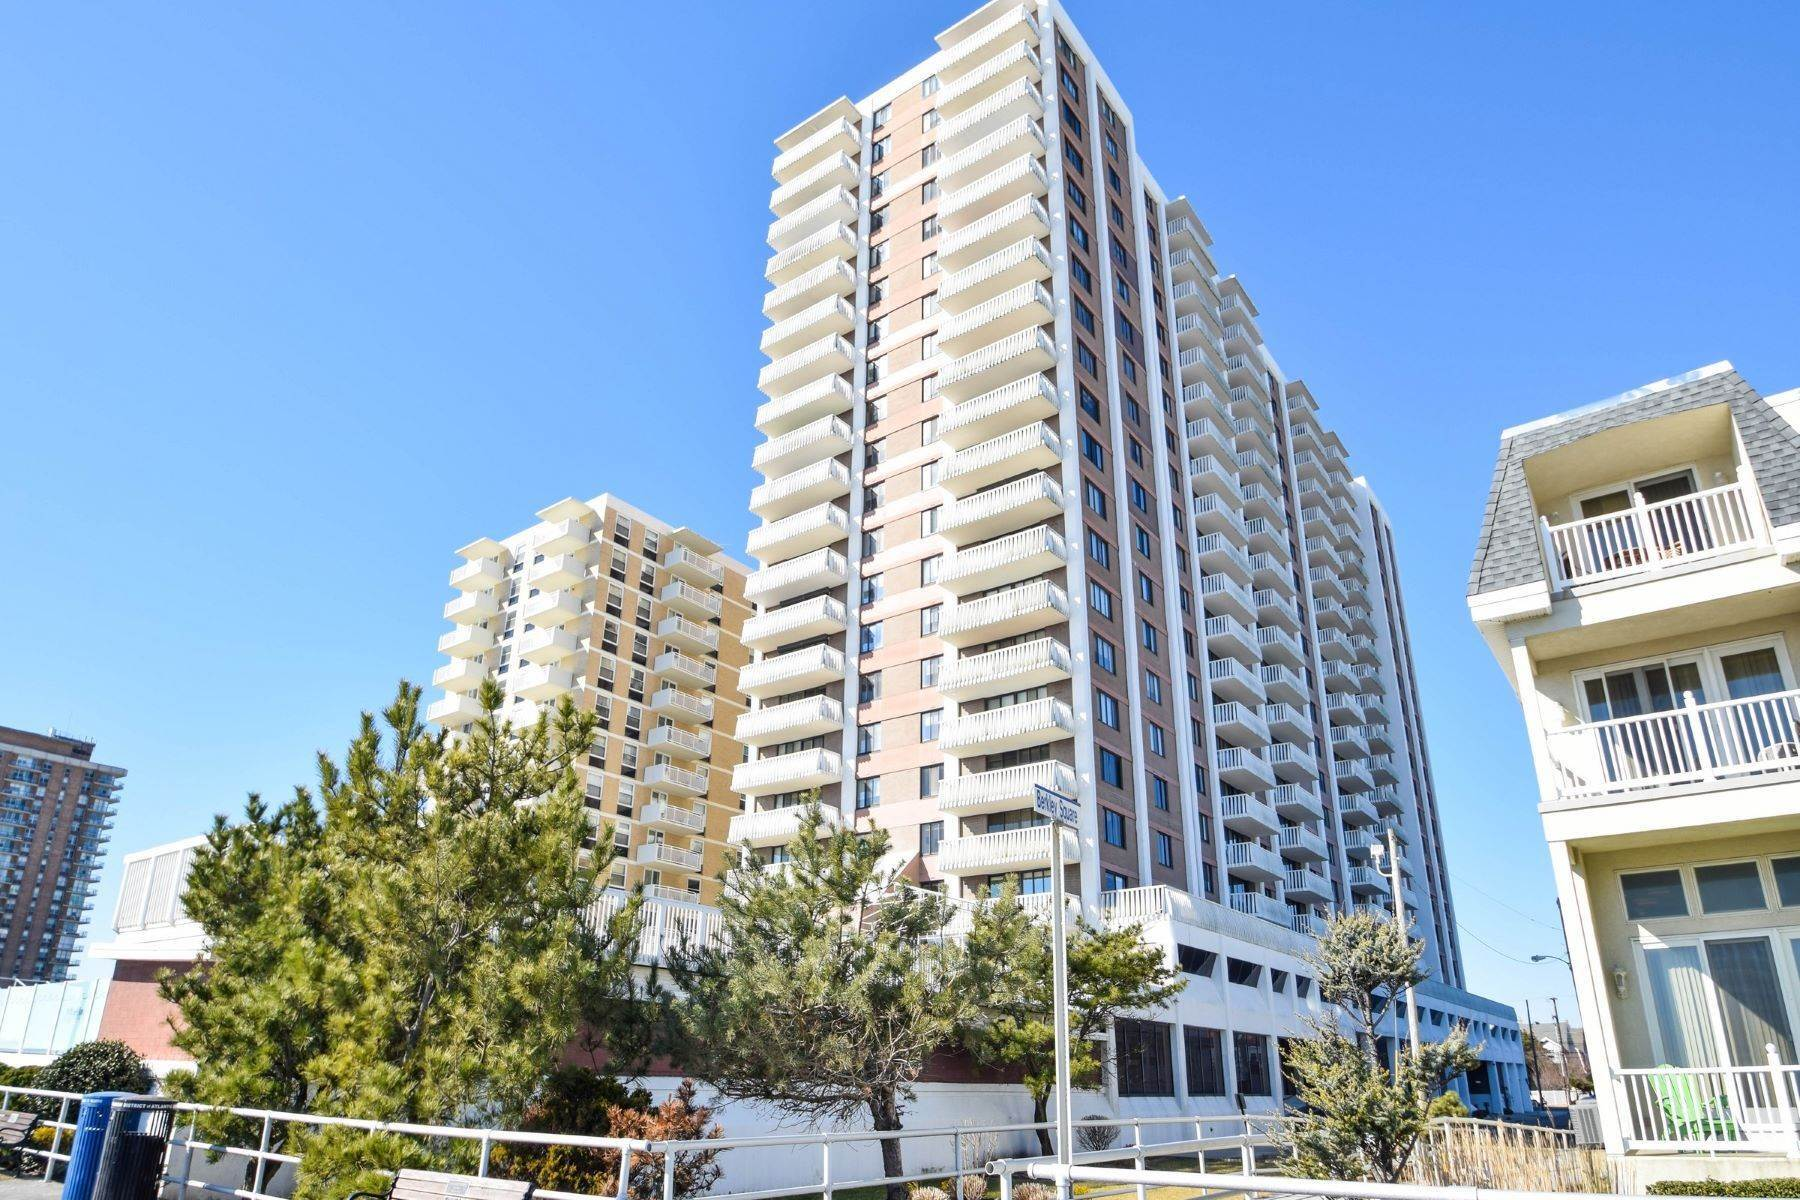 Condominiums for Sale at The Berkley 100 S Berkley Square, Unit 16E Atlantic City, New Jersey 08401 United States